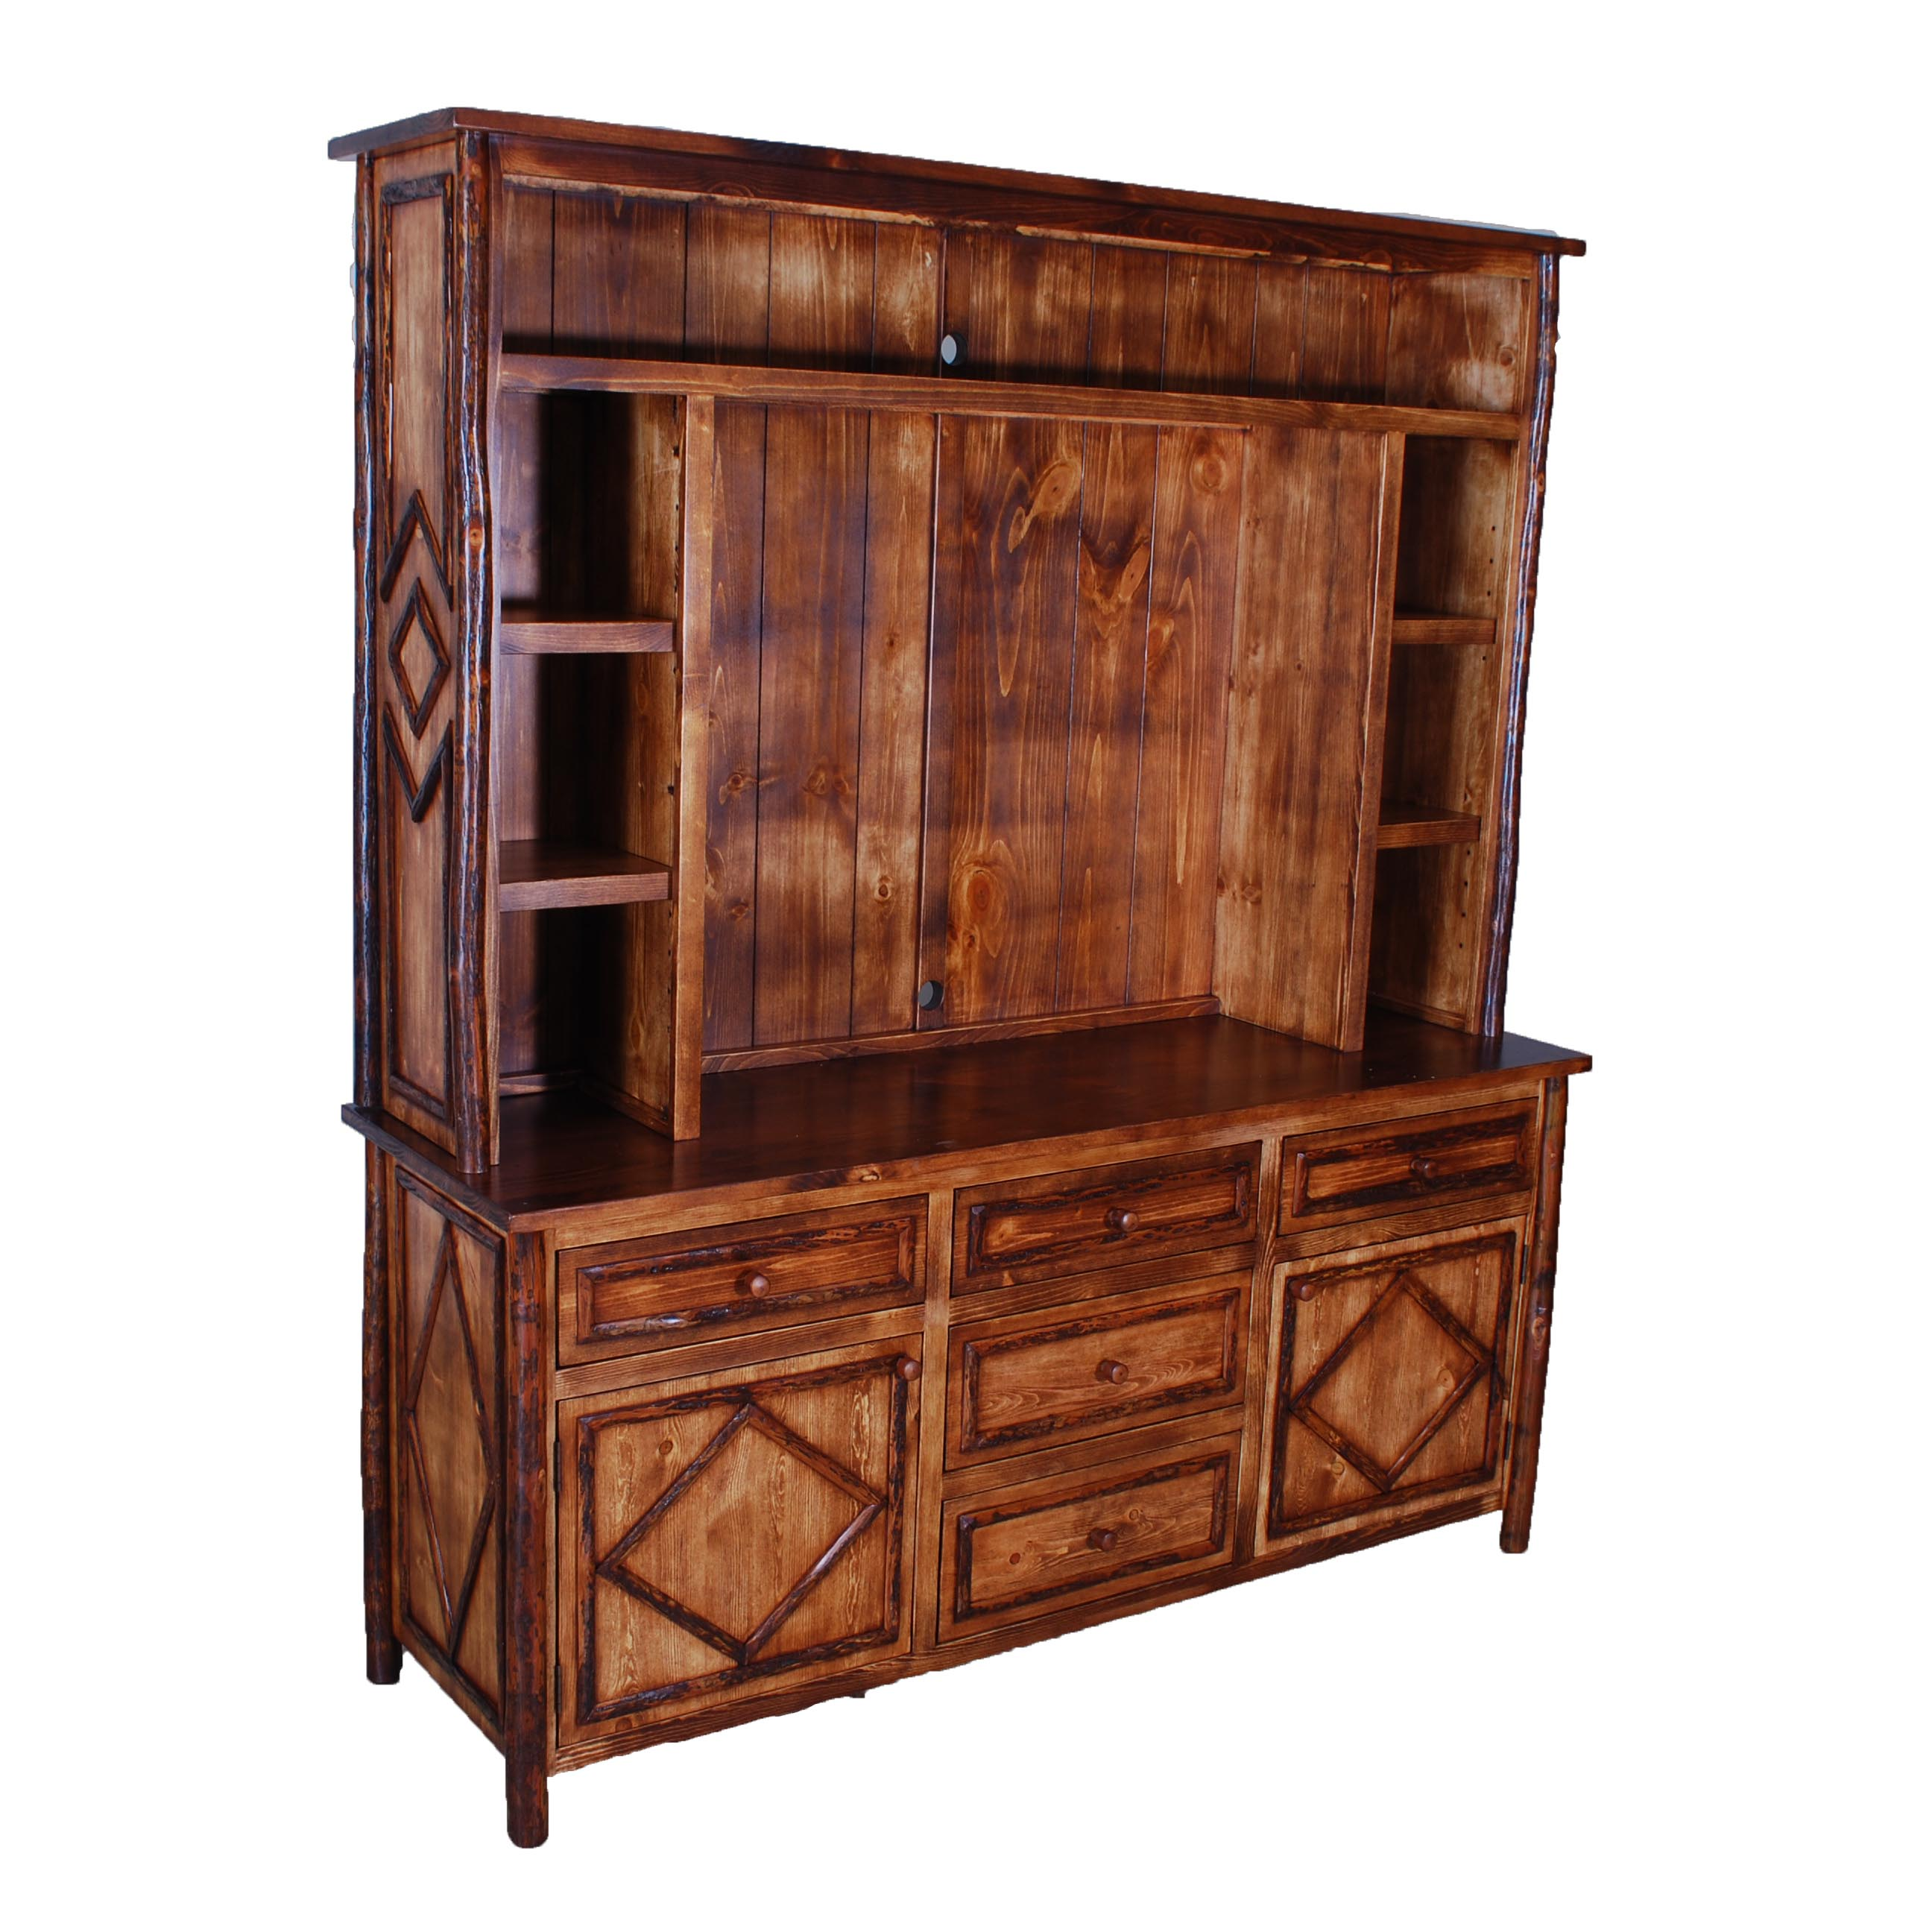 Admirable hickory furniture with wooden large cabinet plus drawers and shelves